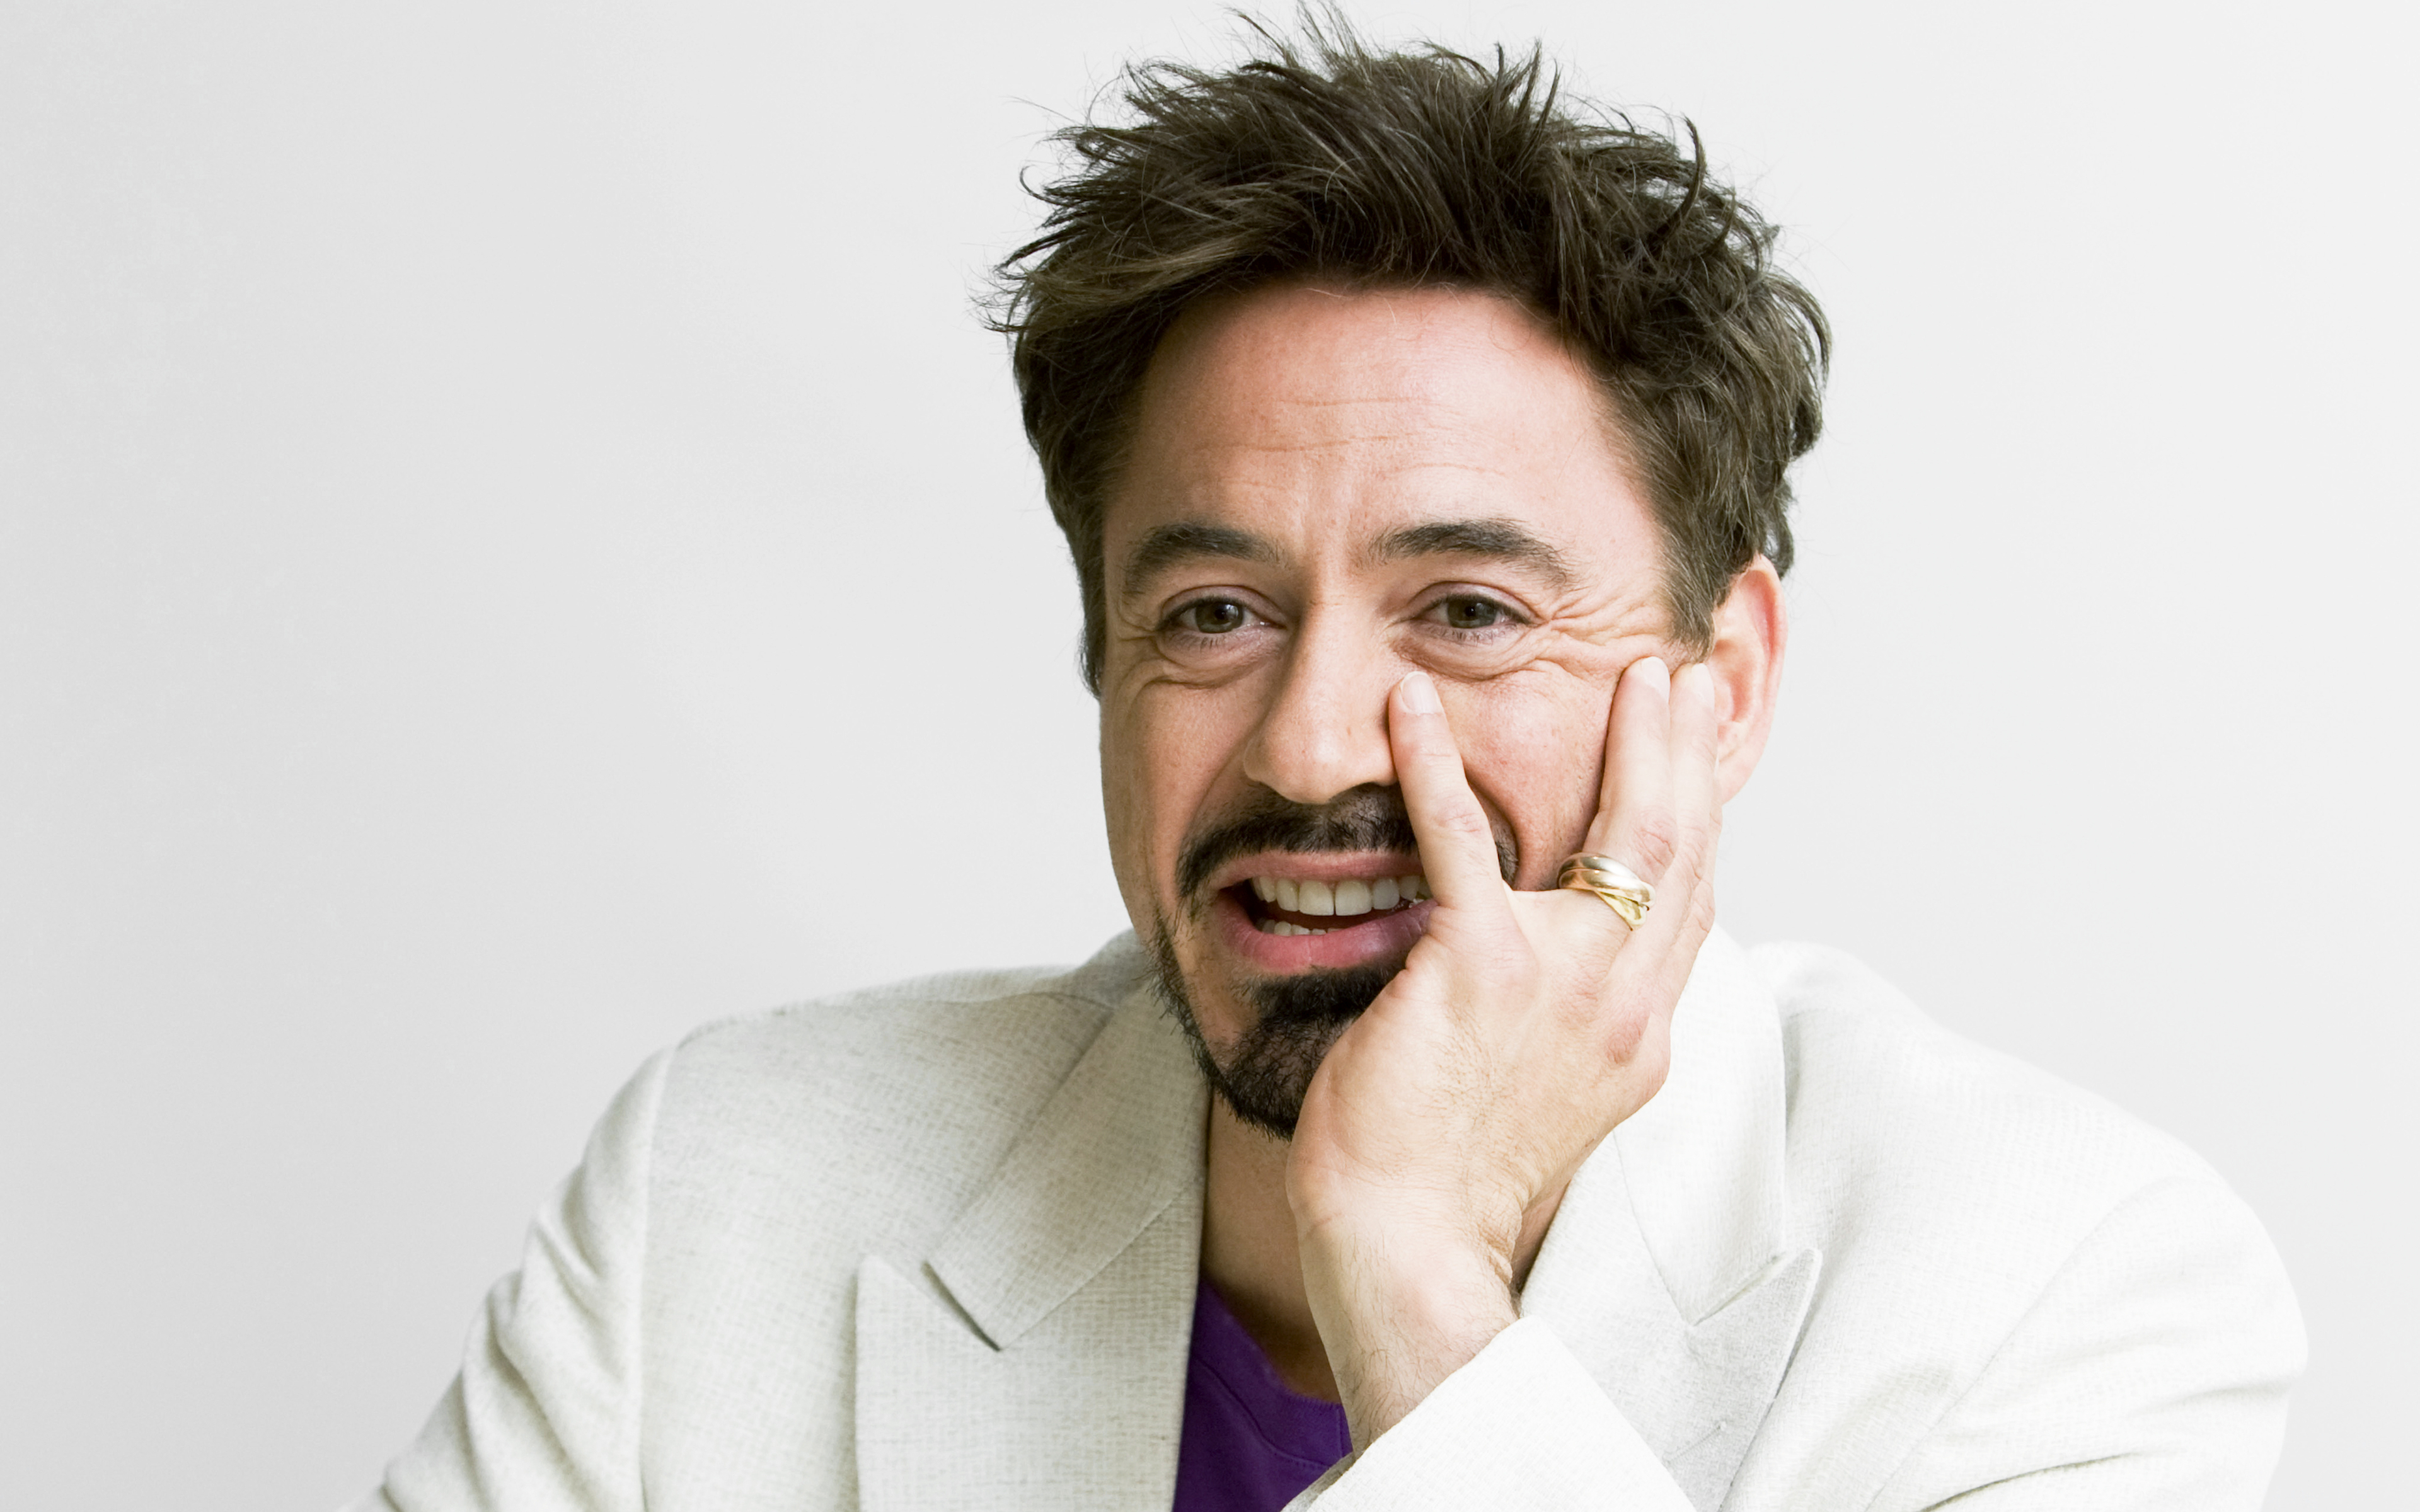 Robert Downey Jr Actor HD Wallpapers   All HD Wallpapers 3840x2400